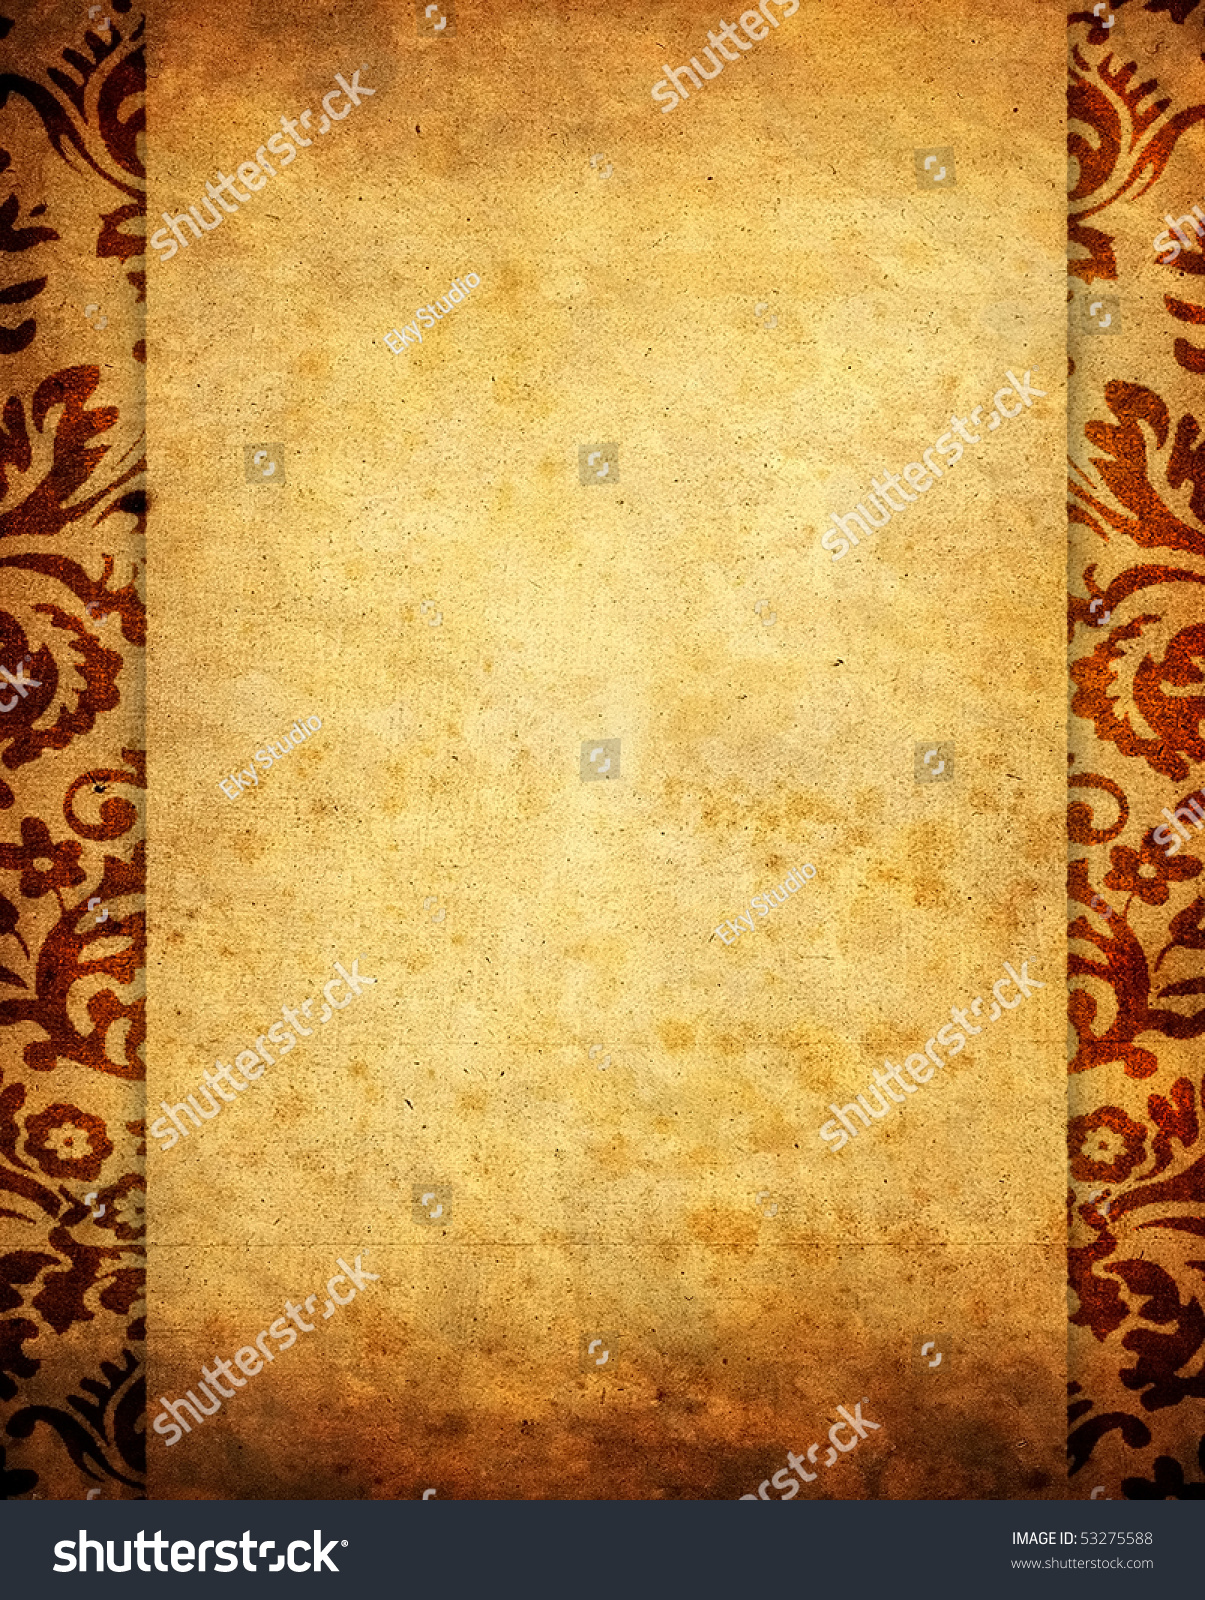 antique scroll backgrounds - photo #11